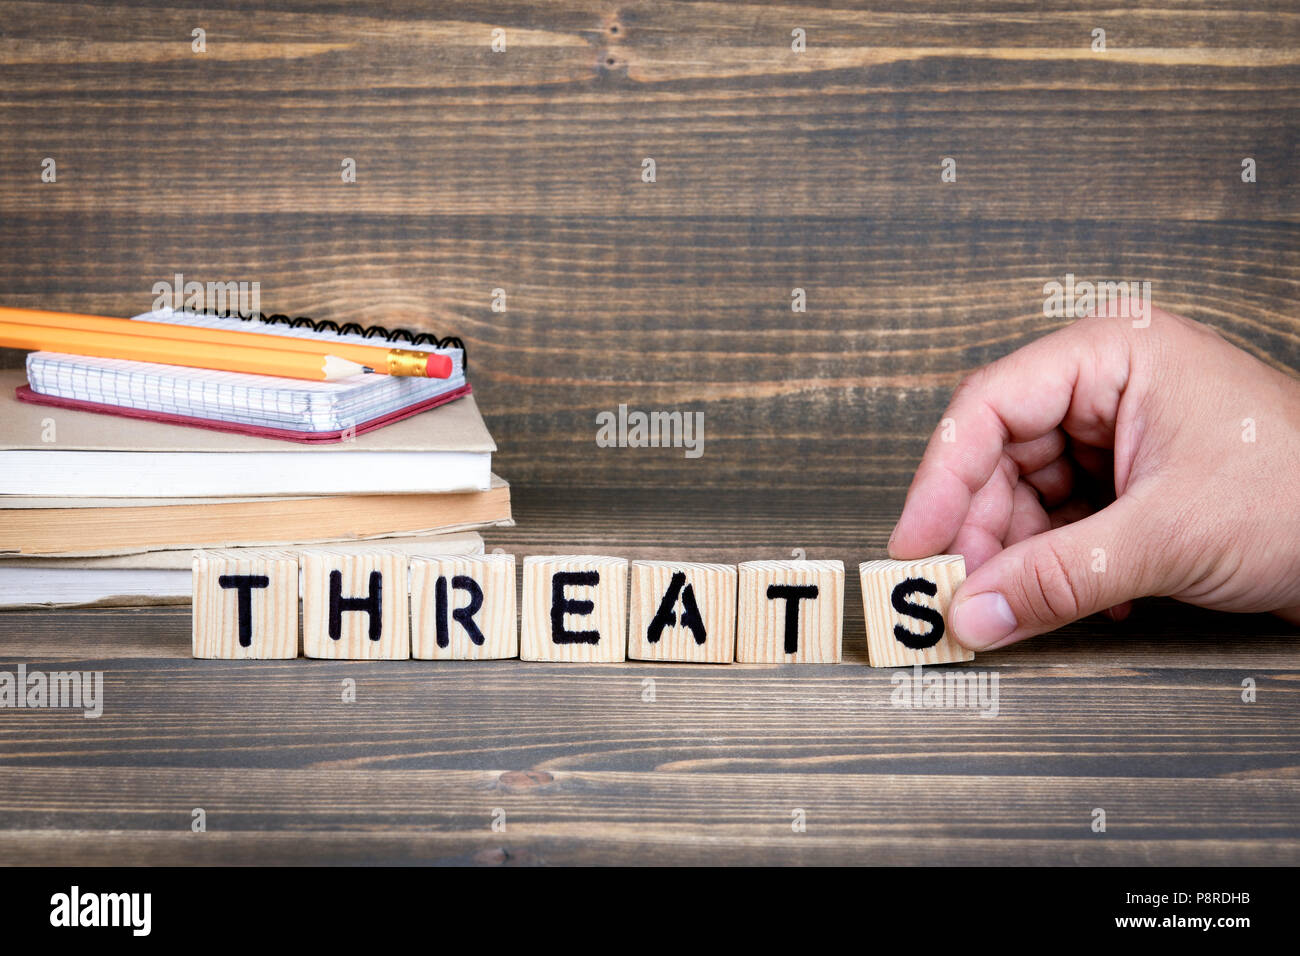 Threats. Wooden letters on the office desk, informative and communication background - Stock Image